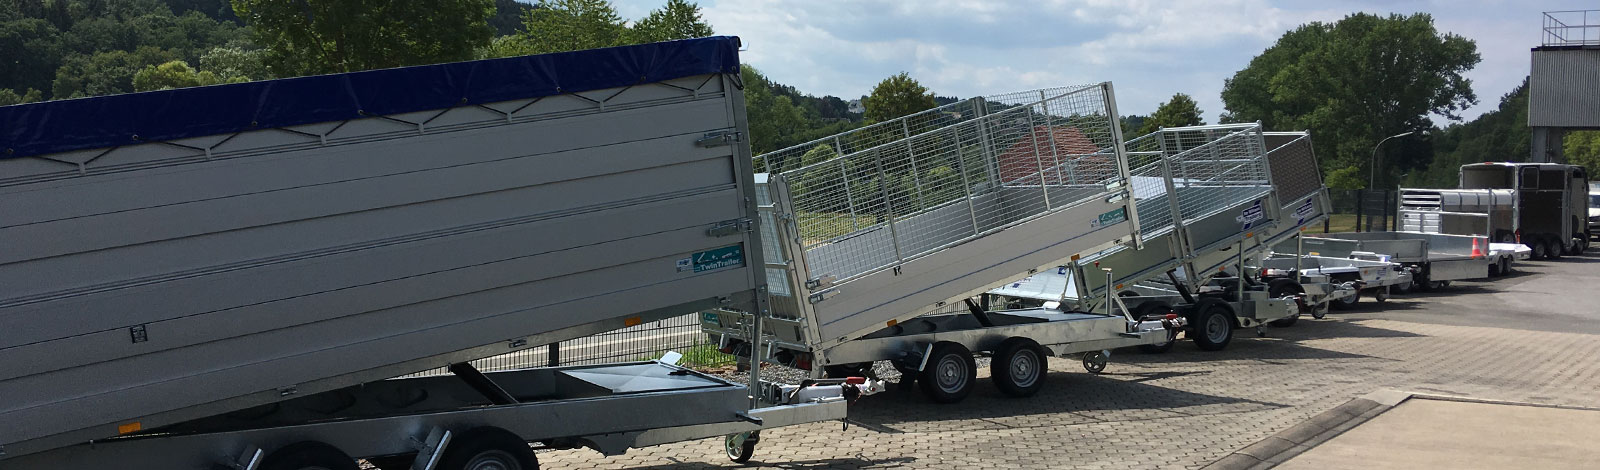 Trailer-Point Anhänger